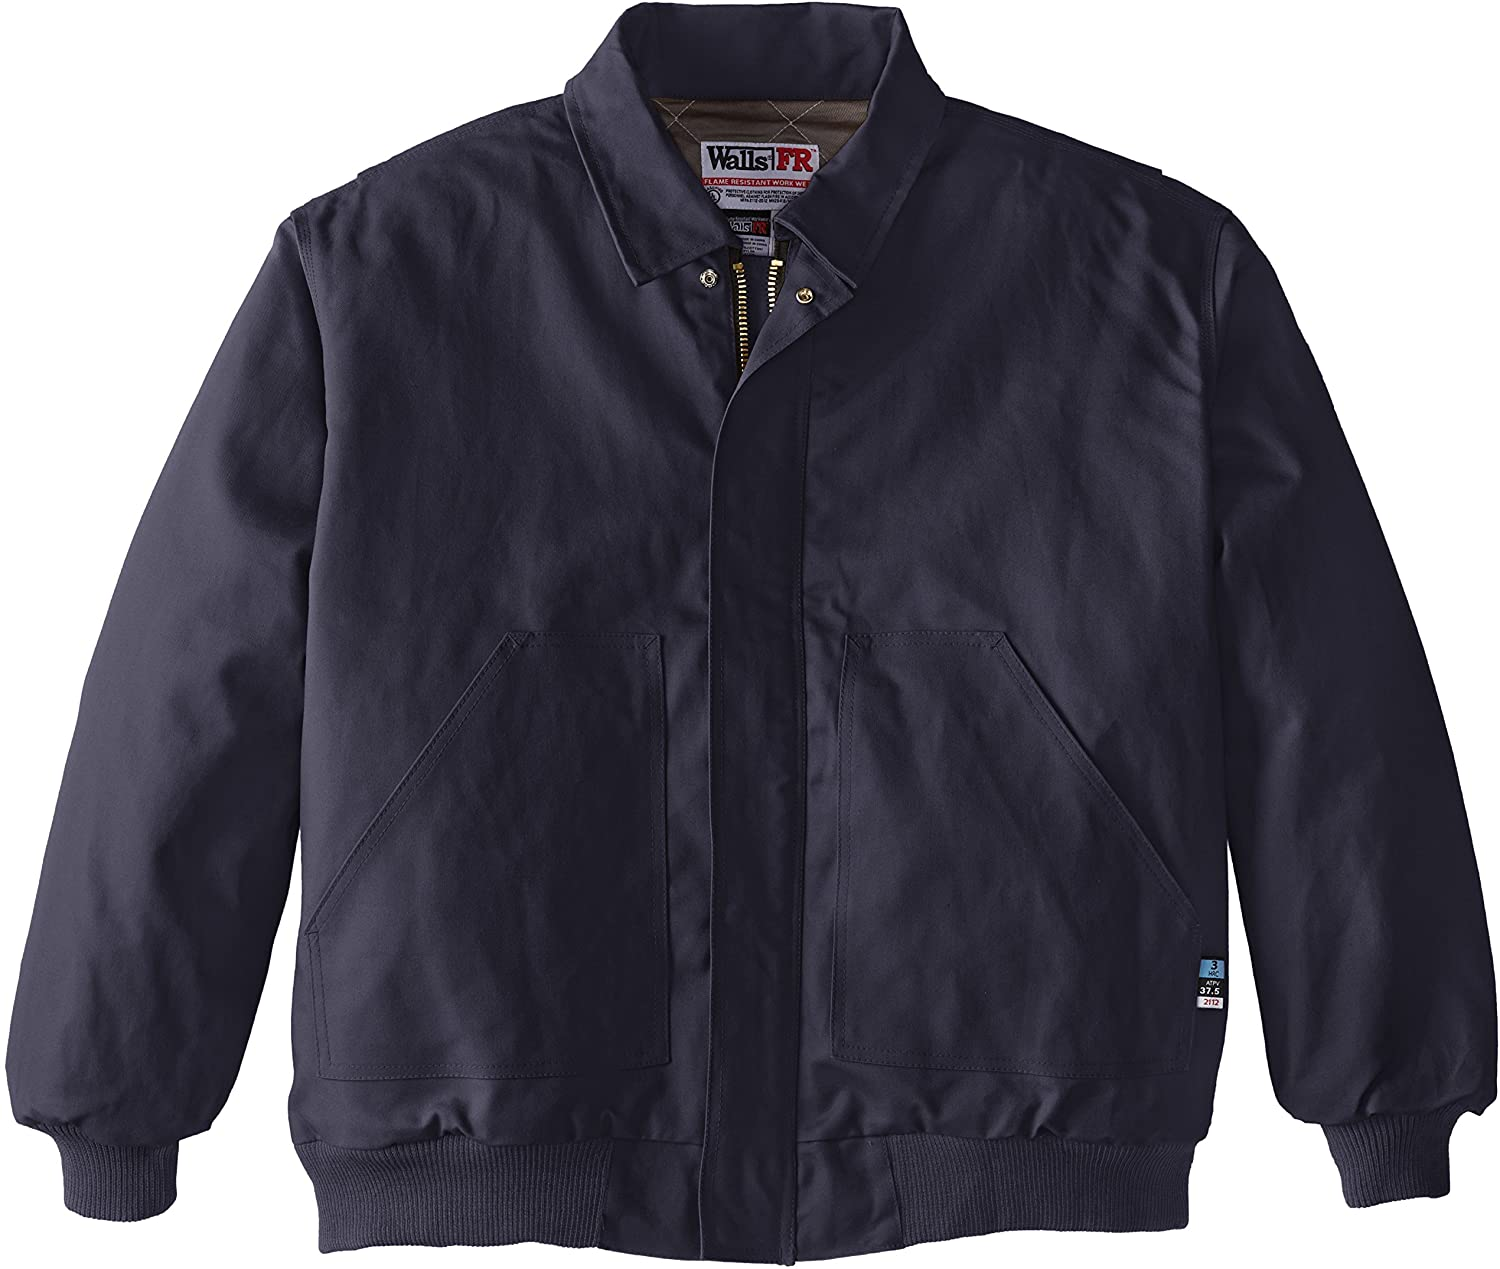 Walls Men's Flame Resistant Big and Tall Insulated Bomber Jacket